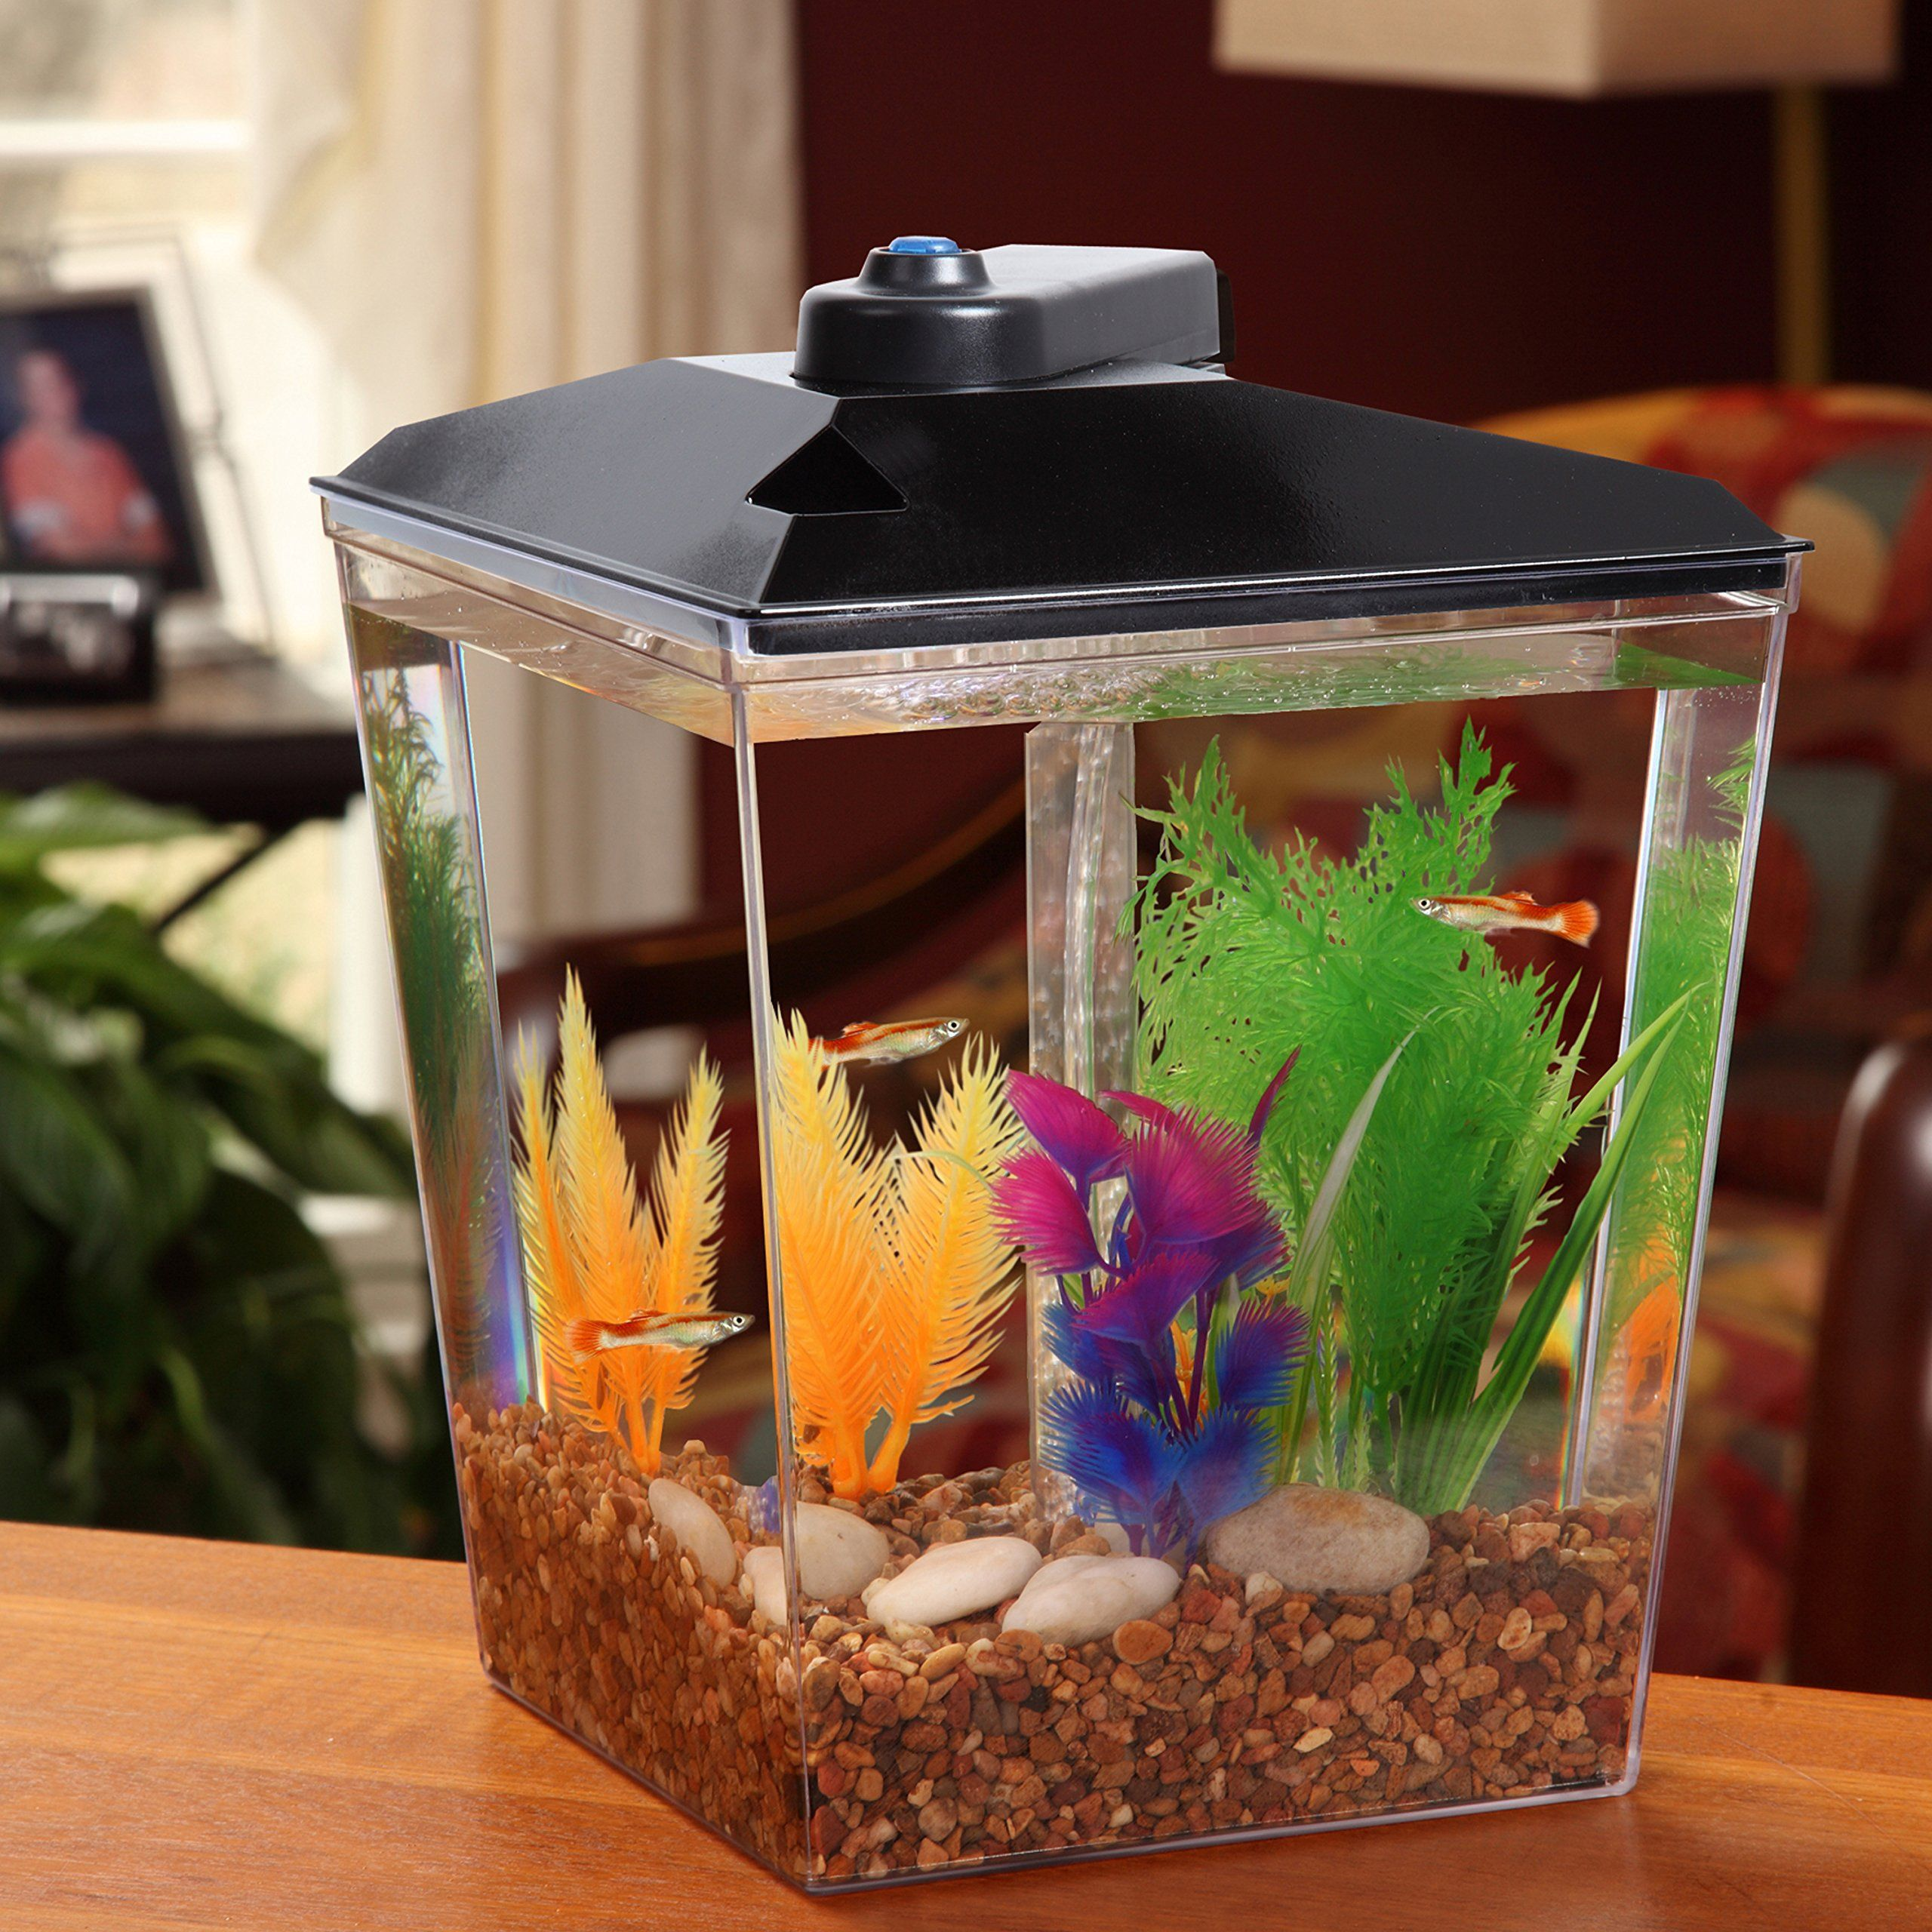 Kollercraft 1 Gallon Corner View Aquarium With Under Gravel Filter System Check Out The Image By Visiting Th Hermit Crab Habitat Best Aquarium Fish Aquarium